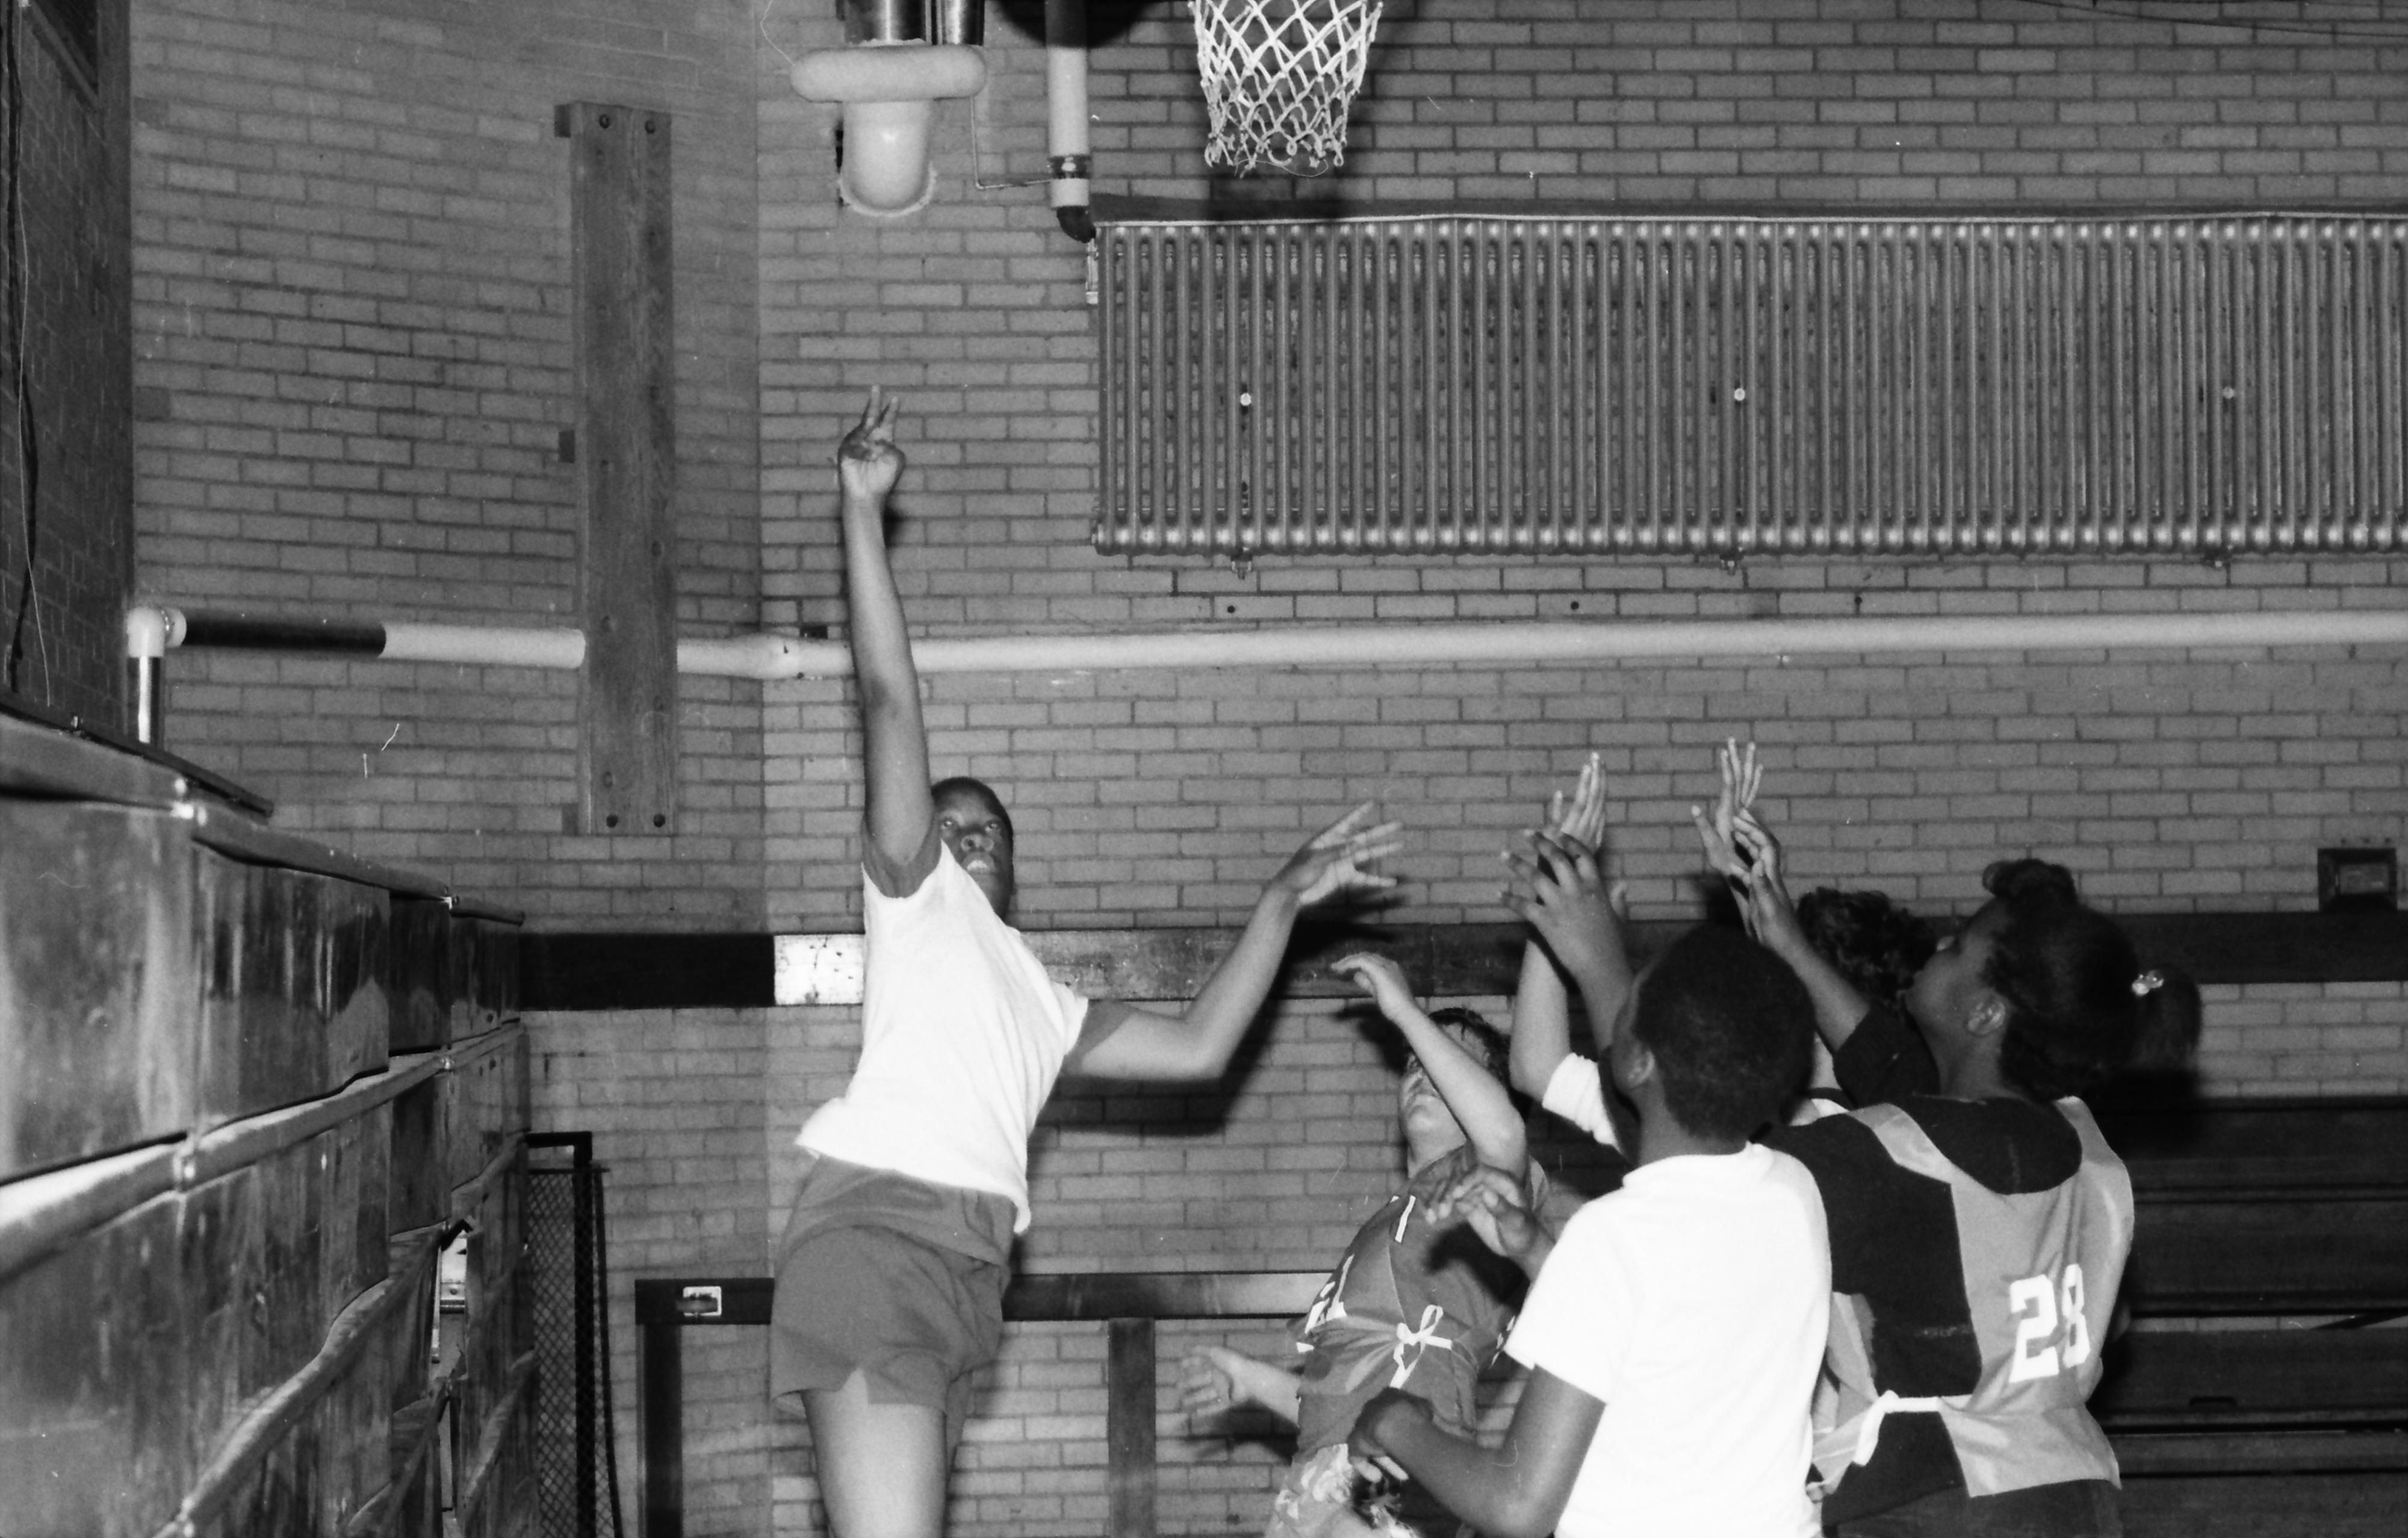 Parkridge Basketball League at Ypsilanti High School, March 1986 image